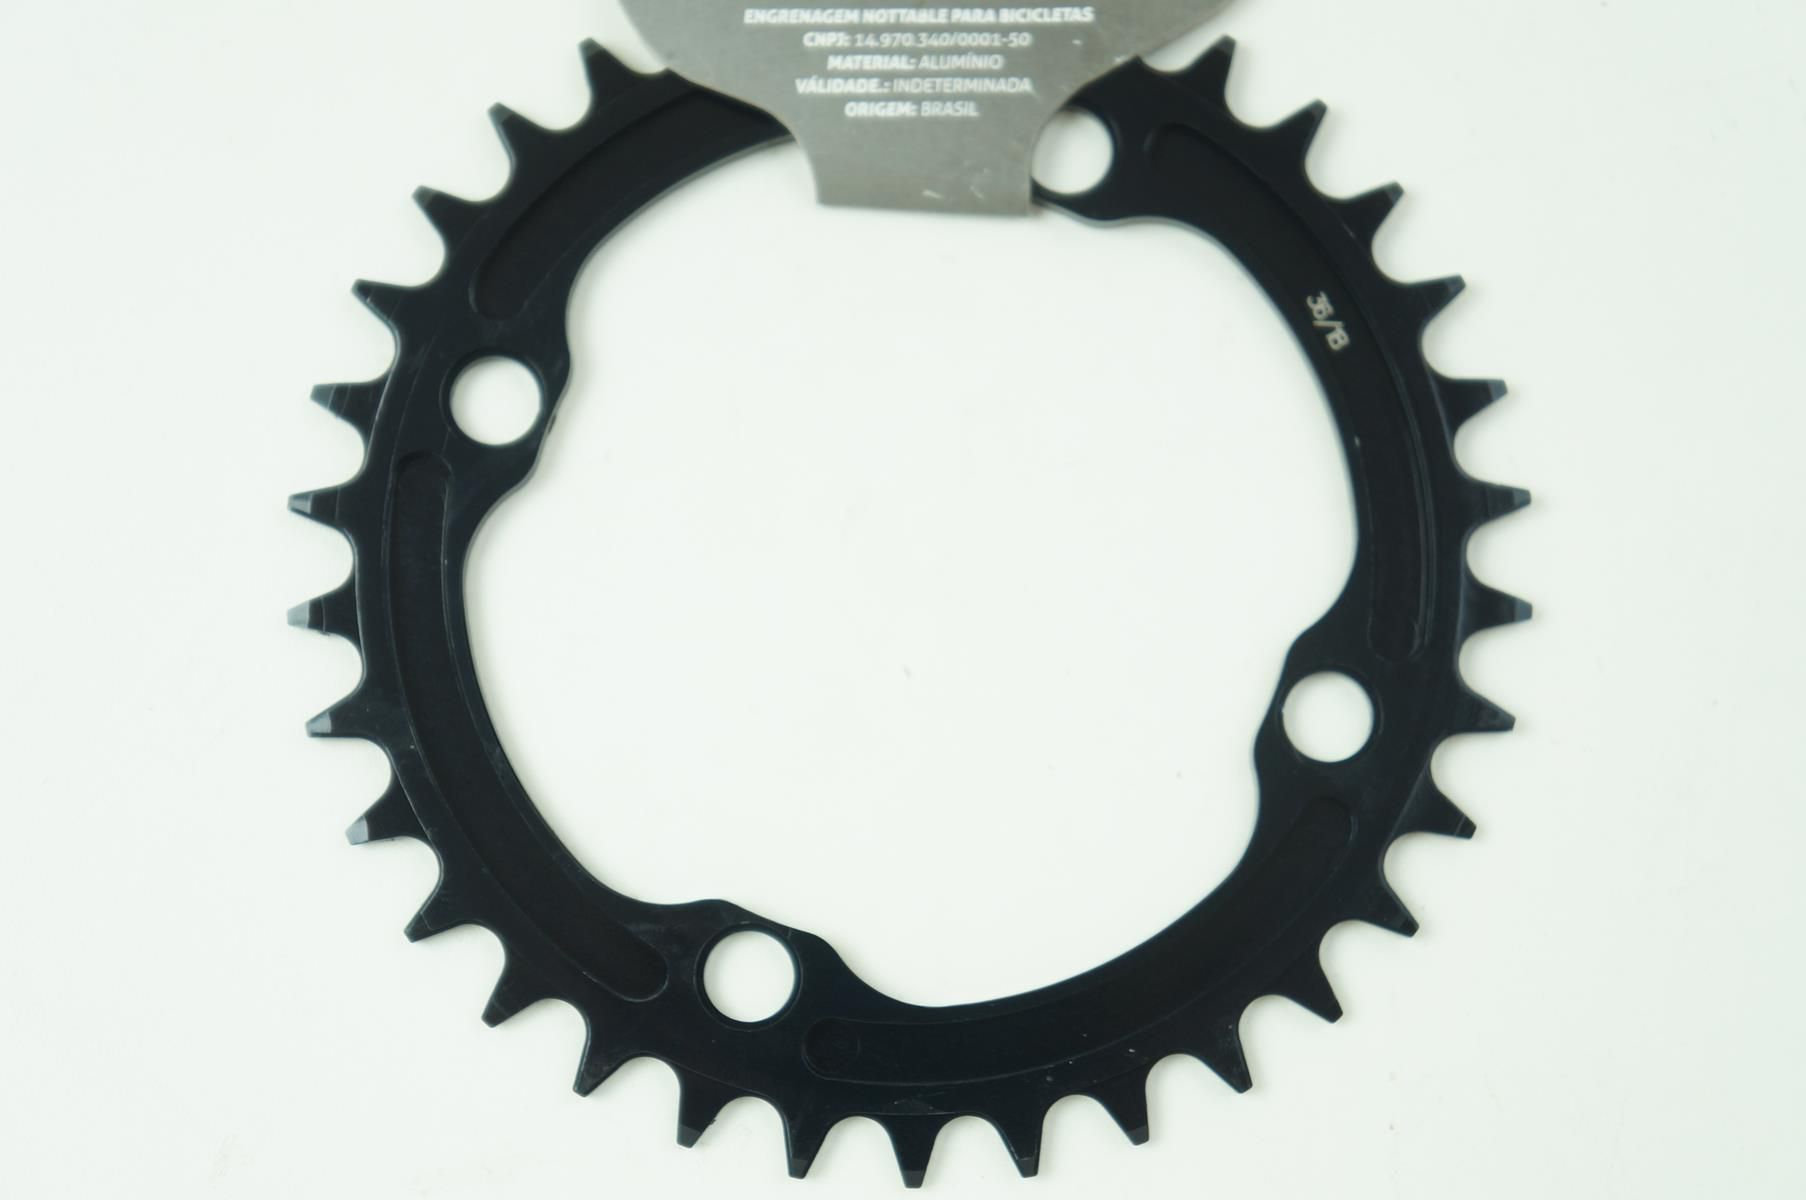 Coroa Unica Mtb Nottable 30 32 34 36 38 dentes Bcd 104mm Narrow wide Serve em Sram Shimano Race Face